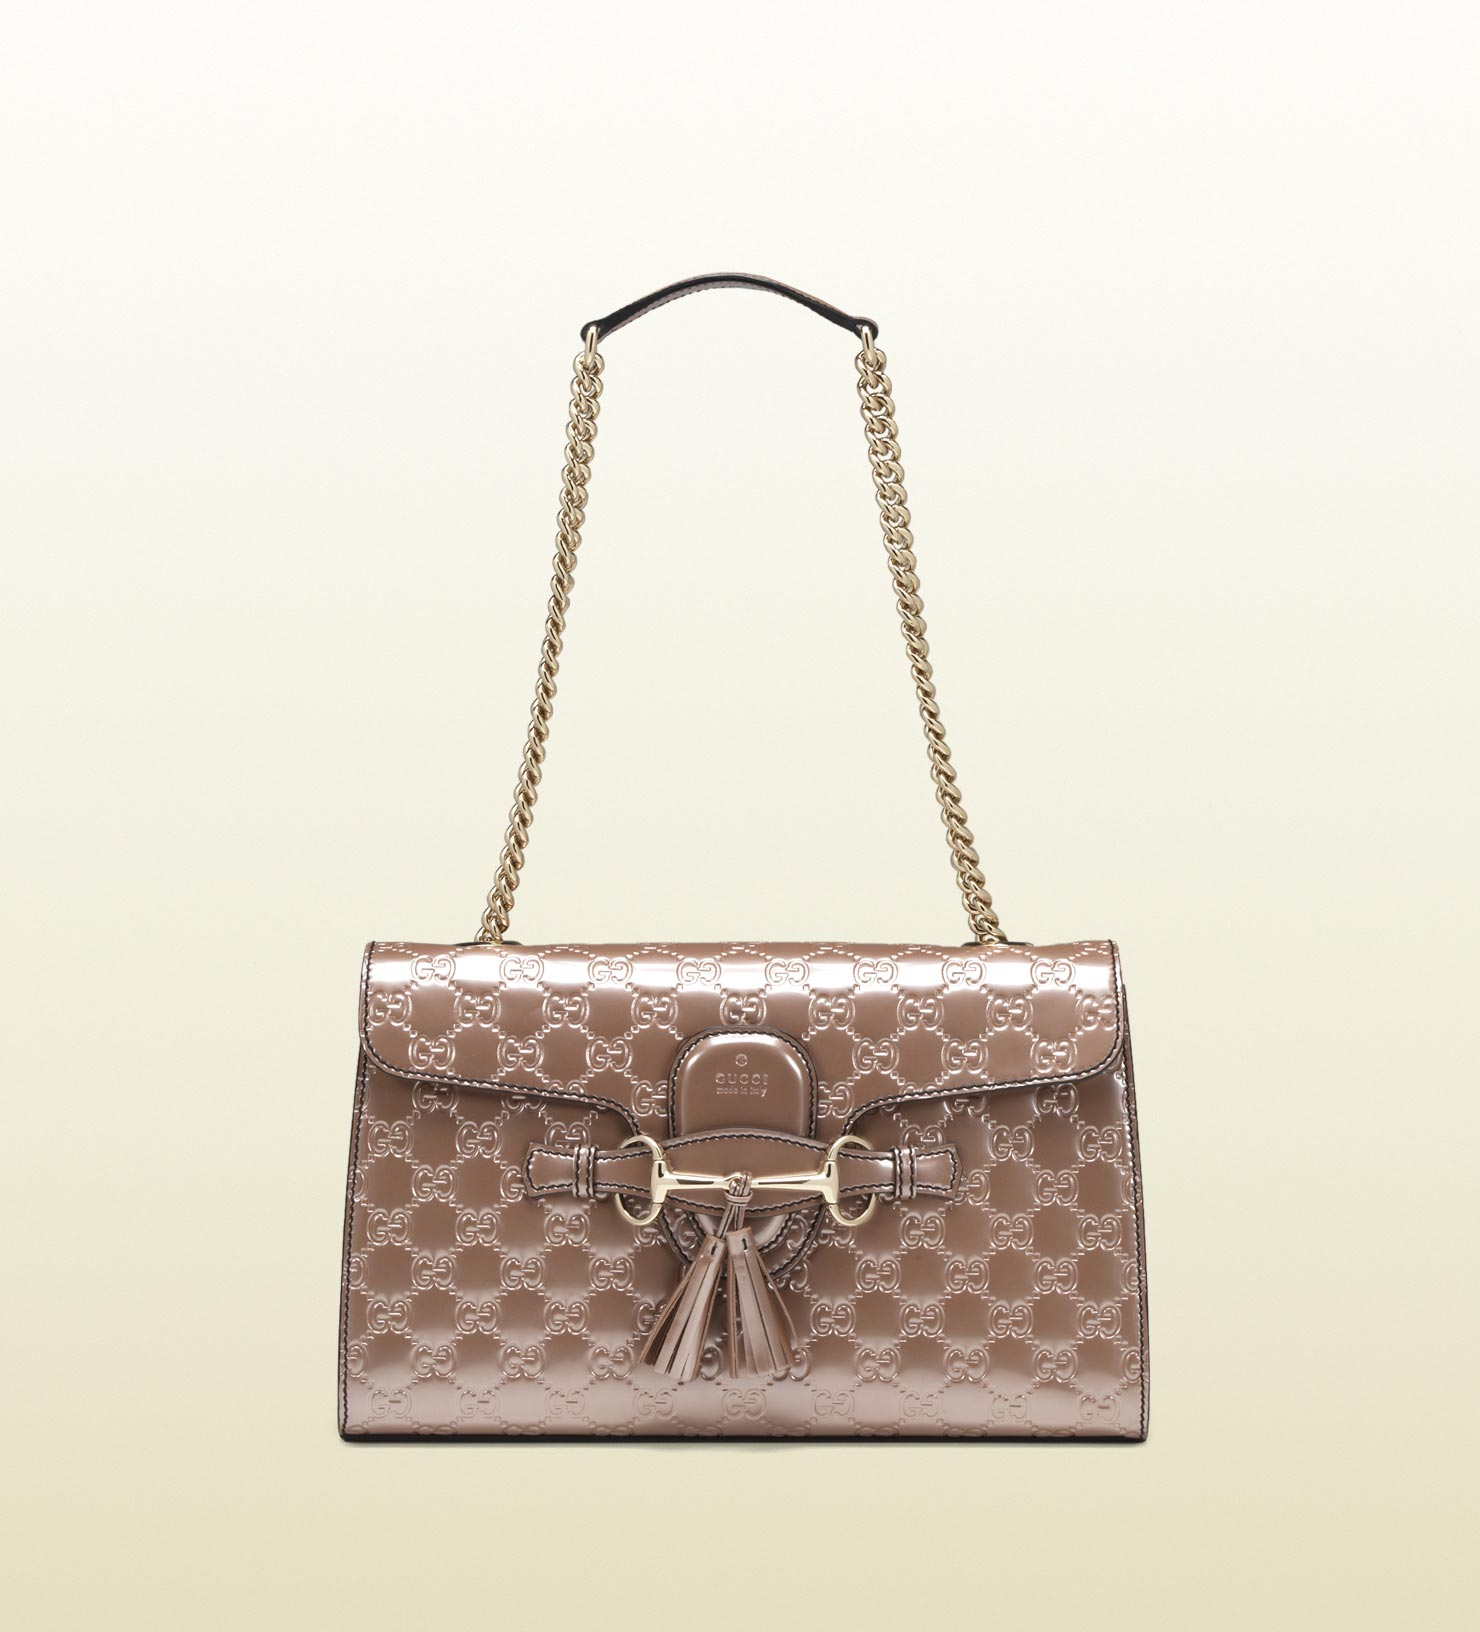 7f768dd940f Lyst - Gucci Emily Light Pink Shiny Microguccissima Chain Shoulder ...